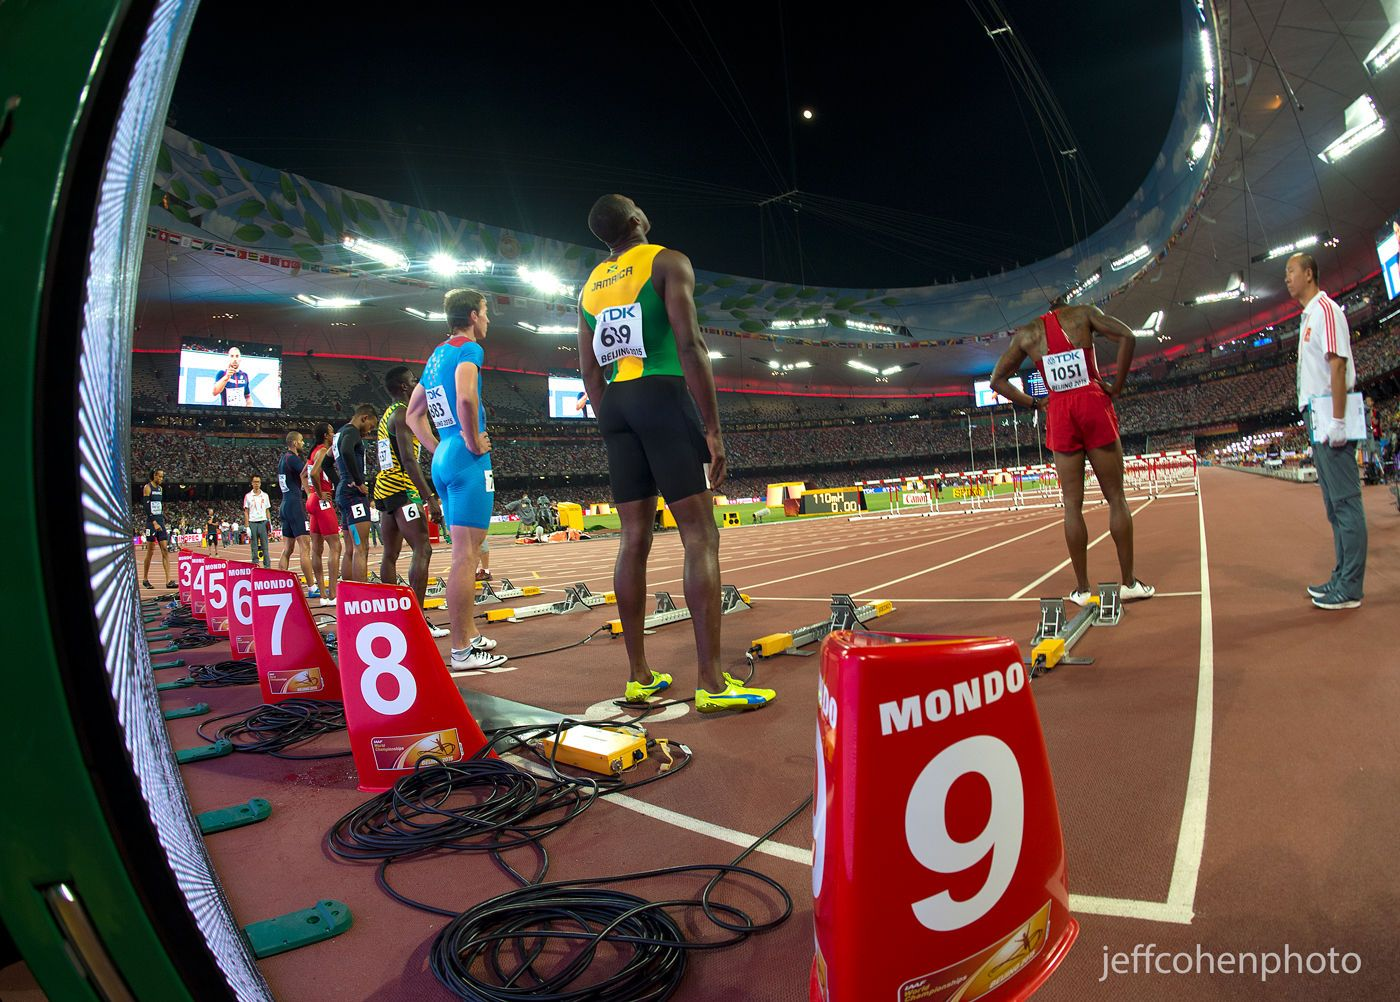 1beijing2015_night_7_110mh_final_jeff_cohen_photo_29260_web.jpg